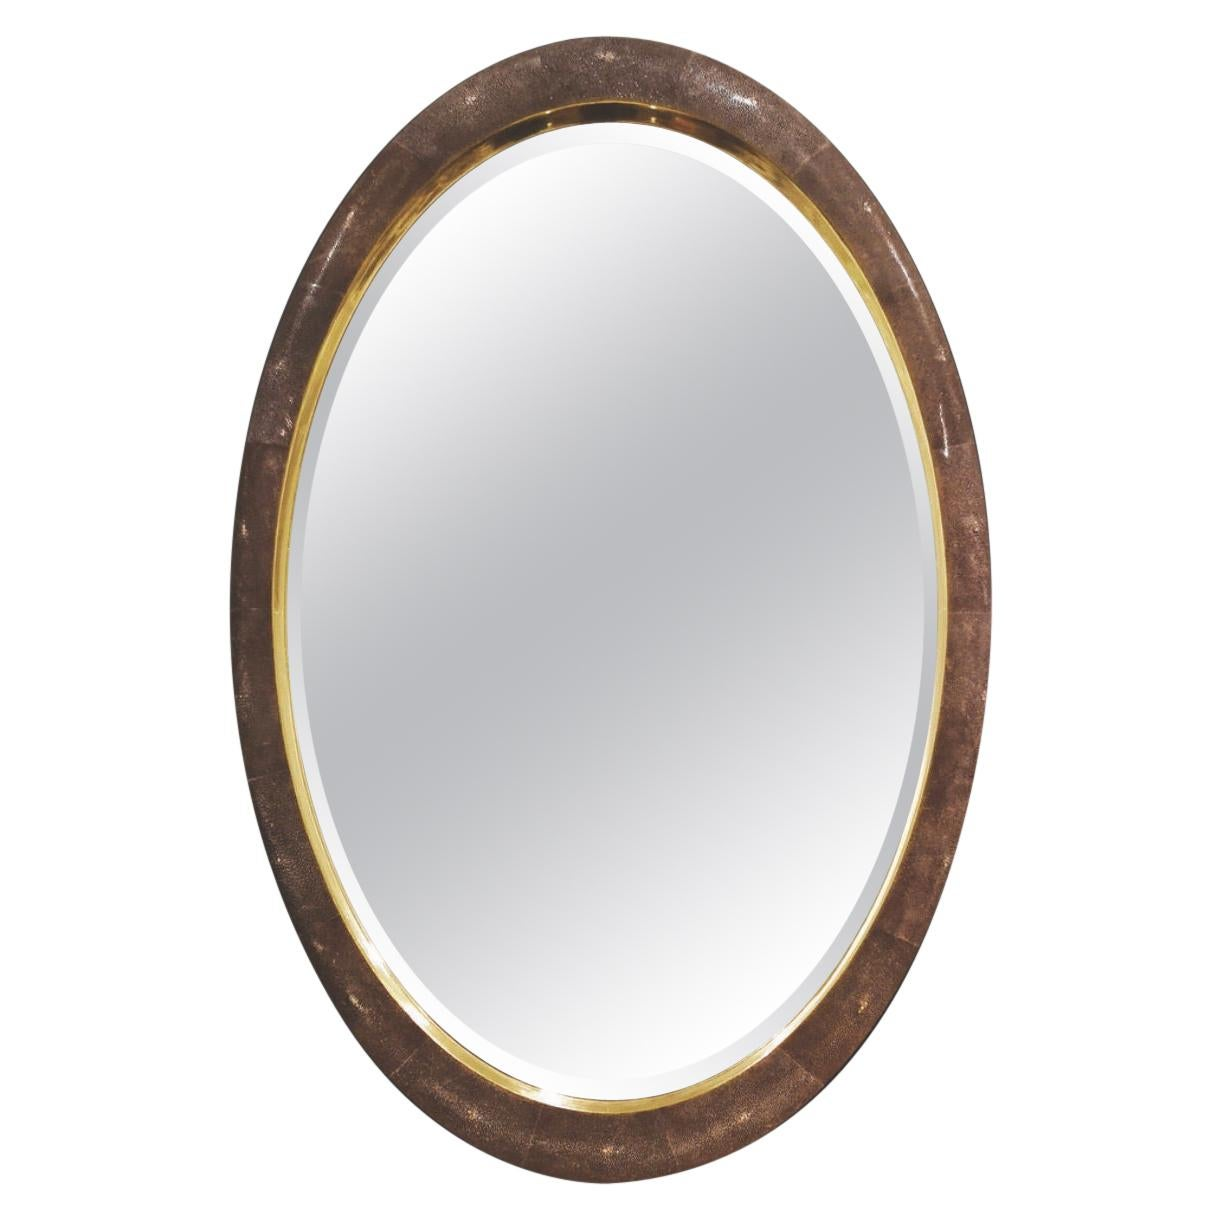 Oval Mirror in Shagreen and Gold Leaf from Elan Atelier